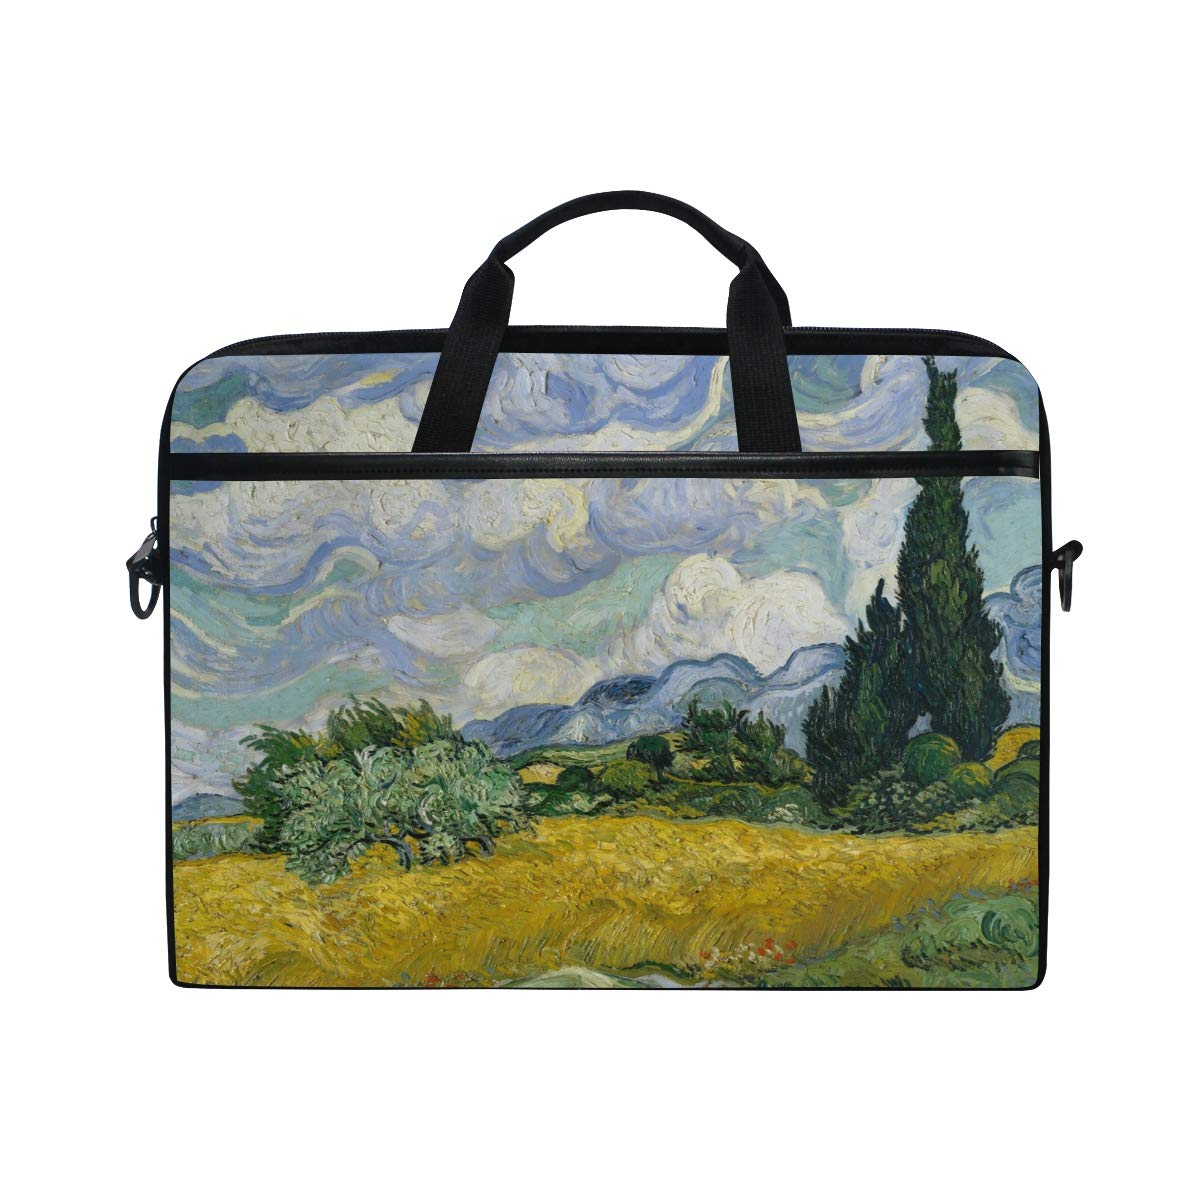 298483311769 Amazon.com: WXLIFE Vintage Wheat Field Van Gogh Art 13 13.3 14 Inch ...